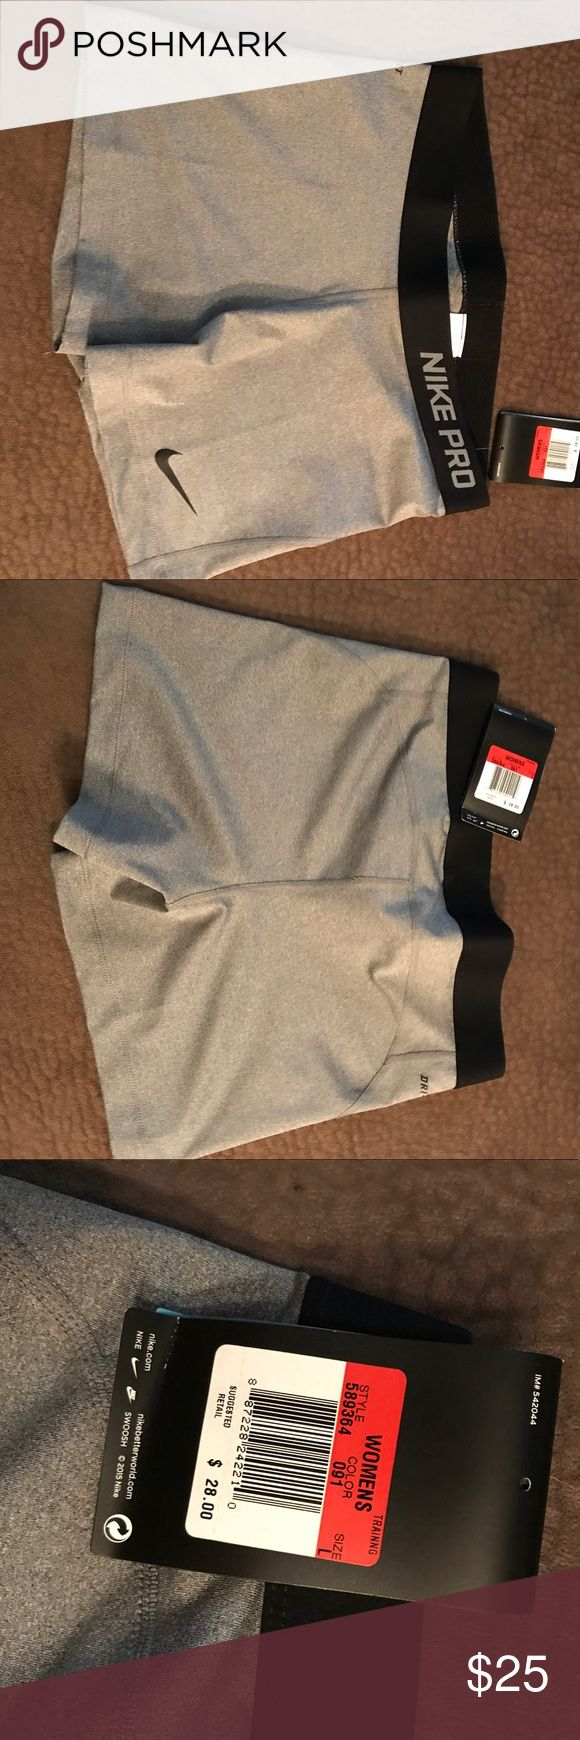 Nike compression shorts Grey with black band. BNWT. Never worn. Nike Shorts